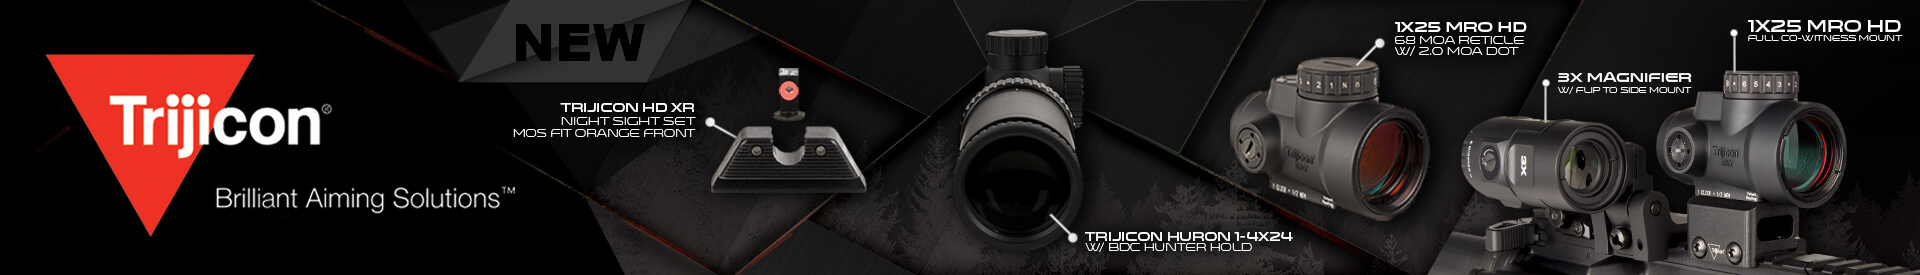 Trijicon Optics